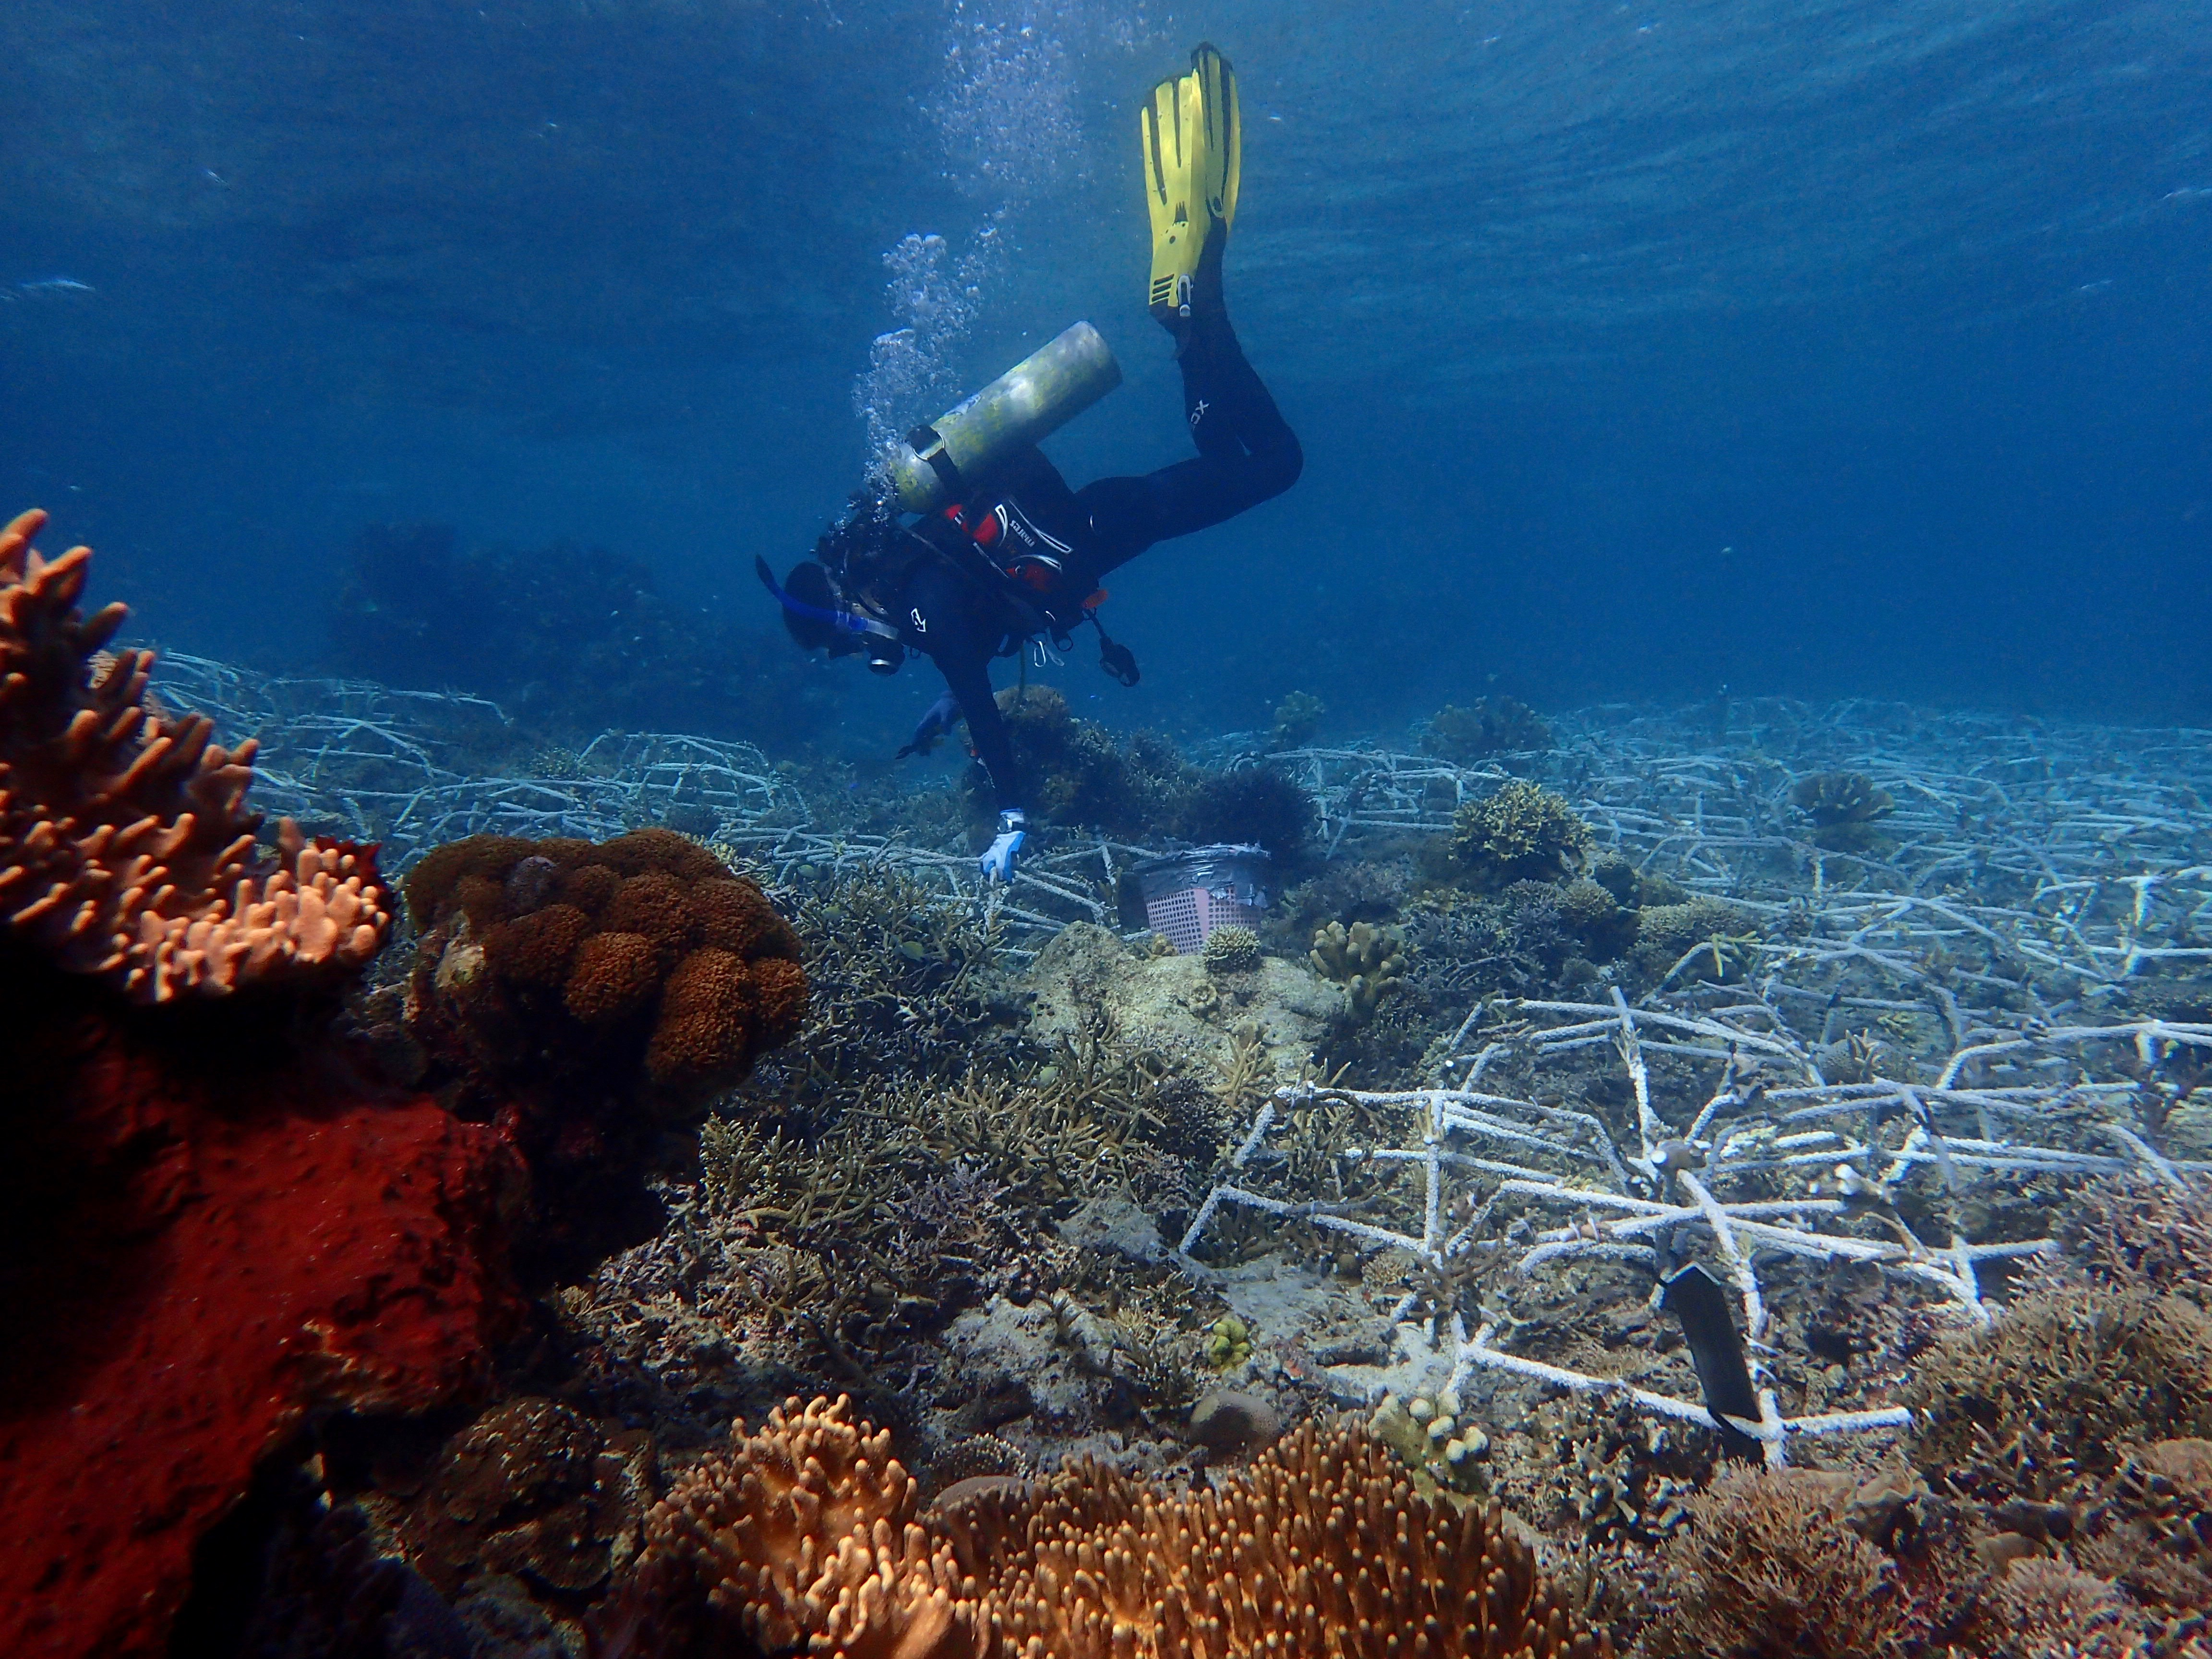 Indonesia Search Date 2018 10 27 Krezi Kamis 25 Baju Koko Al Achwan Original Banyak Model Even After Being Severely Damaged By Blast Fishing And Coral Mining Reefs Can Be Rehabilitated Over Large Scales Using A Relatively Inexpensive